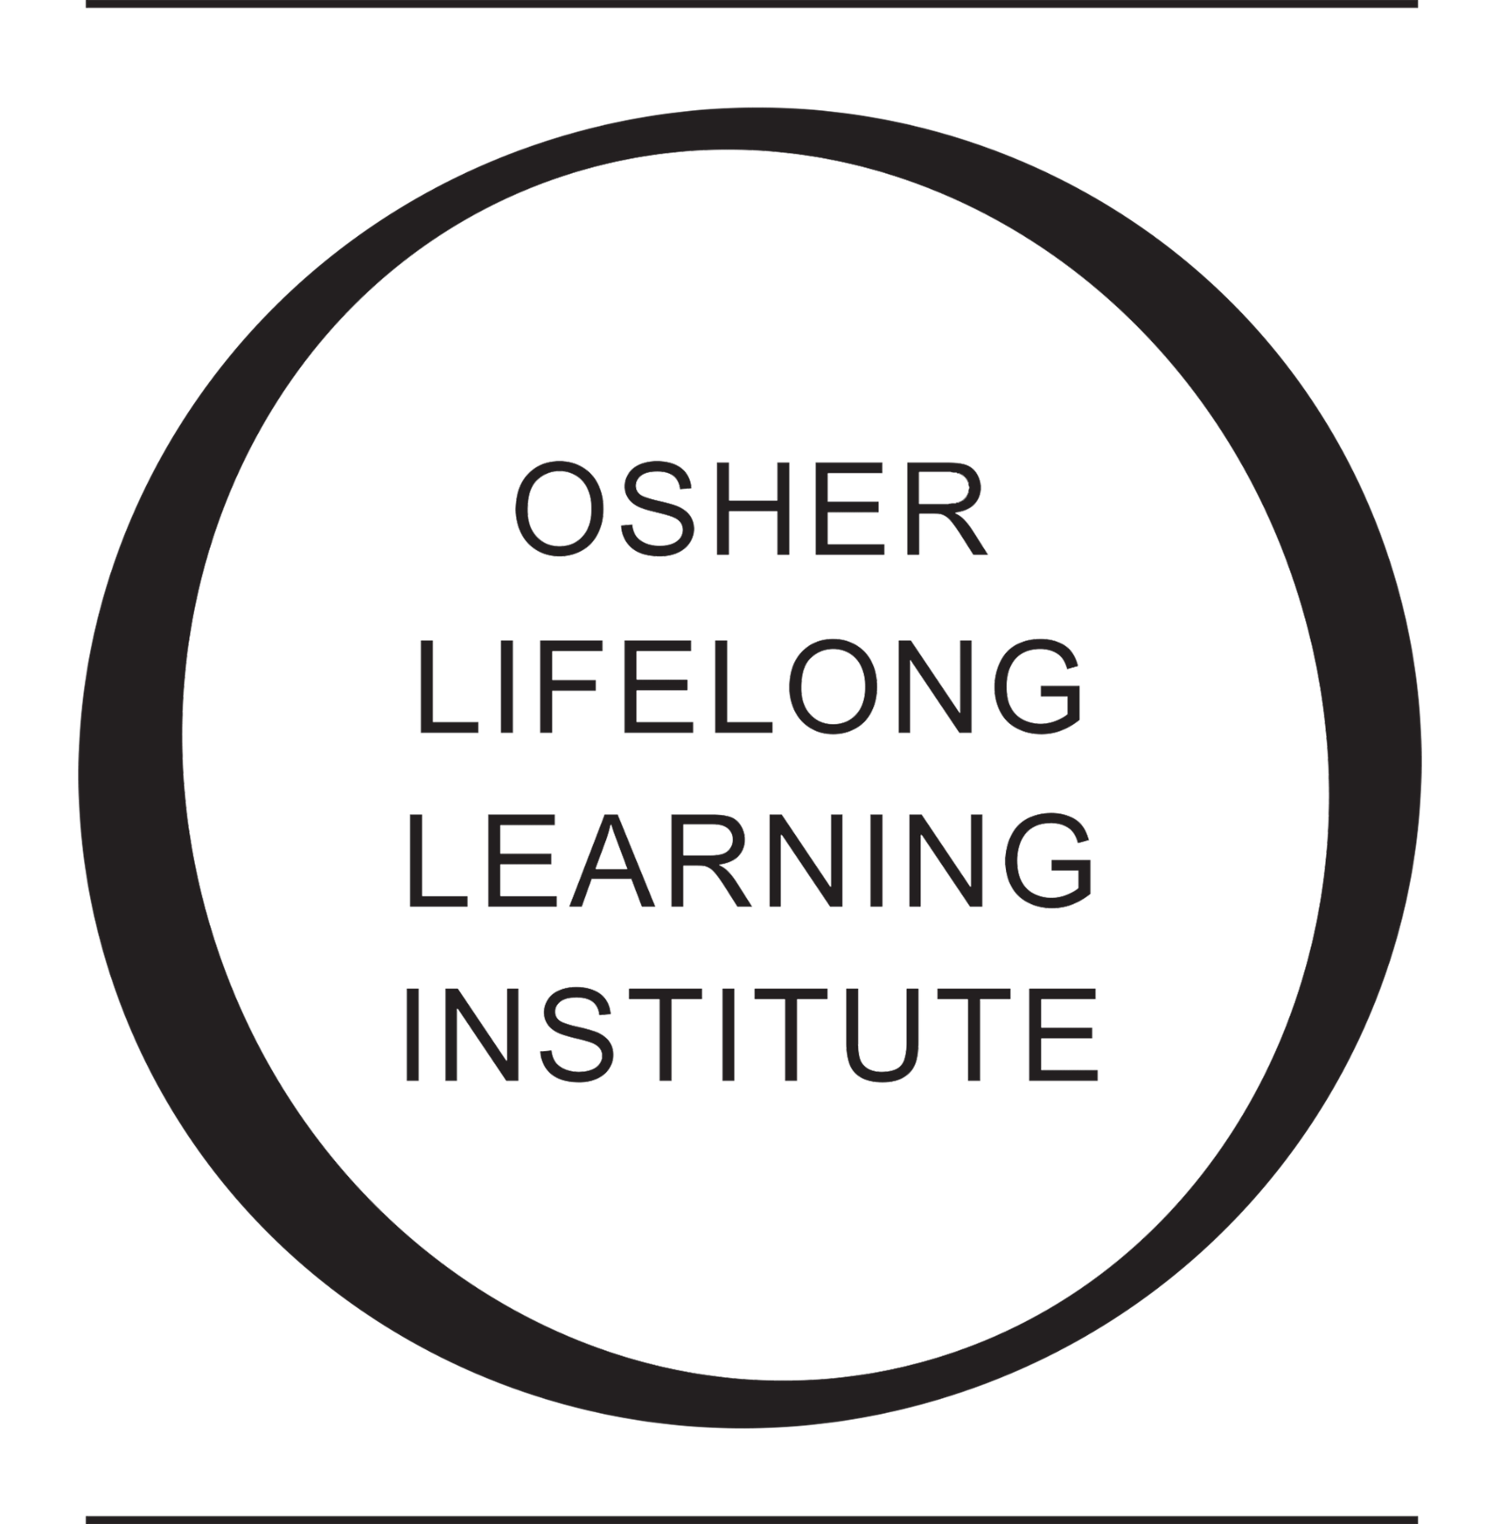 Fall 2018 Registration is Open - Osher Lifelong Learning